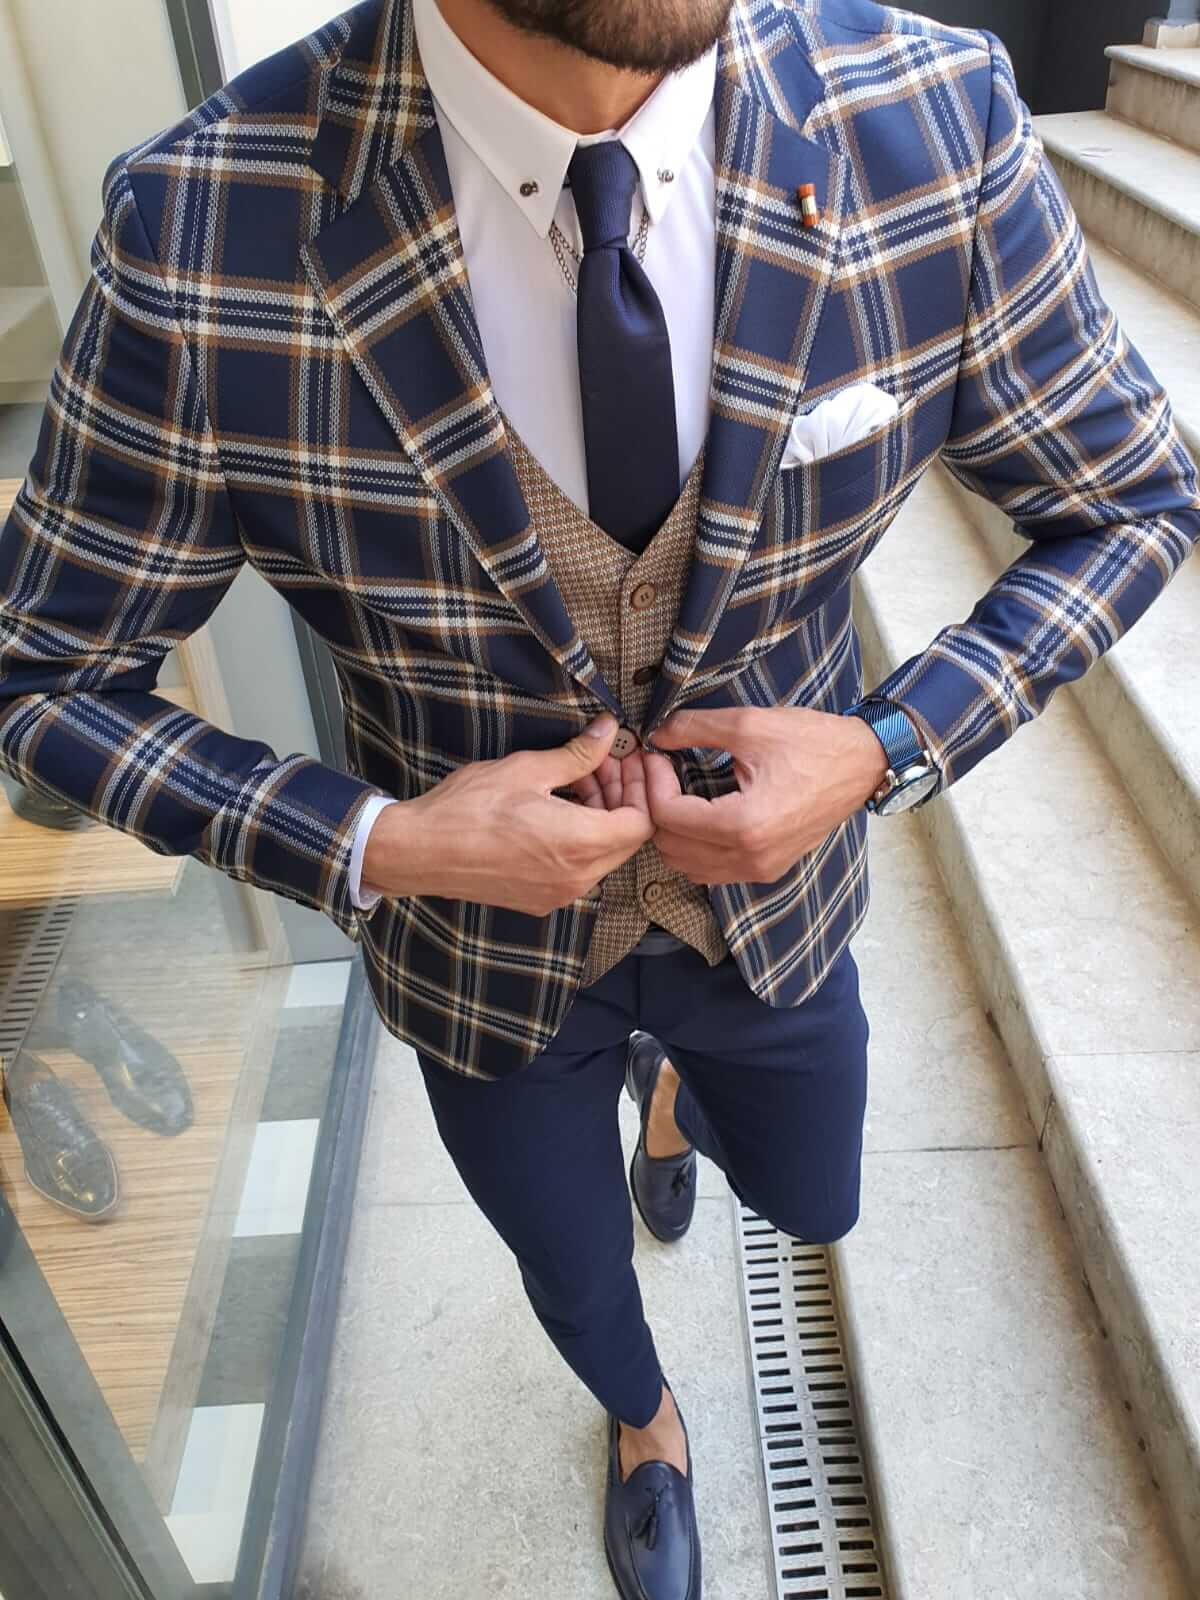 VENICE CAMEL & NAVY PLAID SUIT - Hollo Men